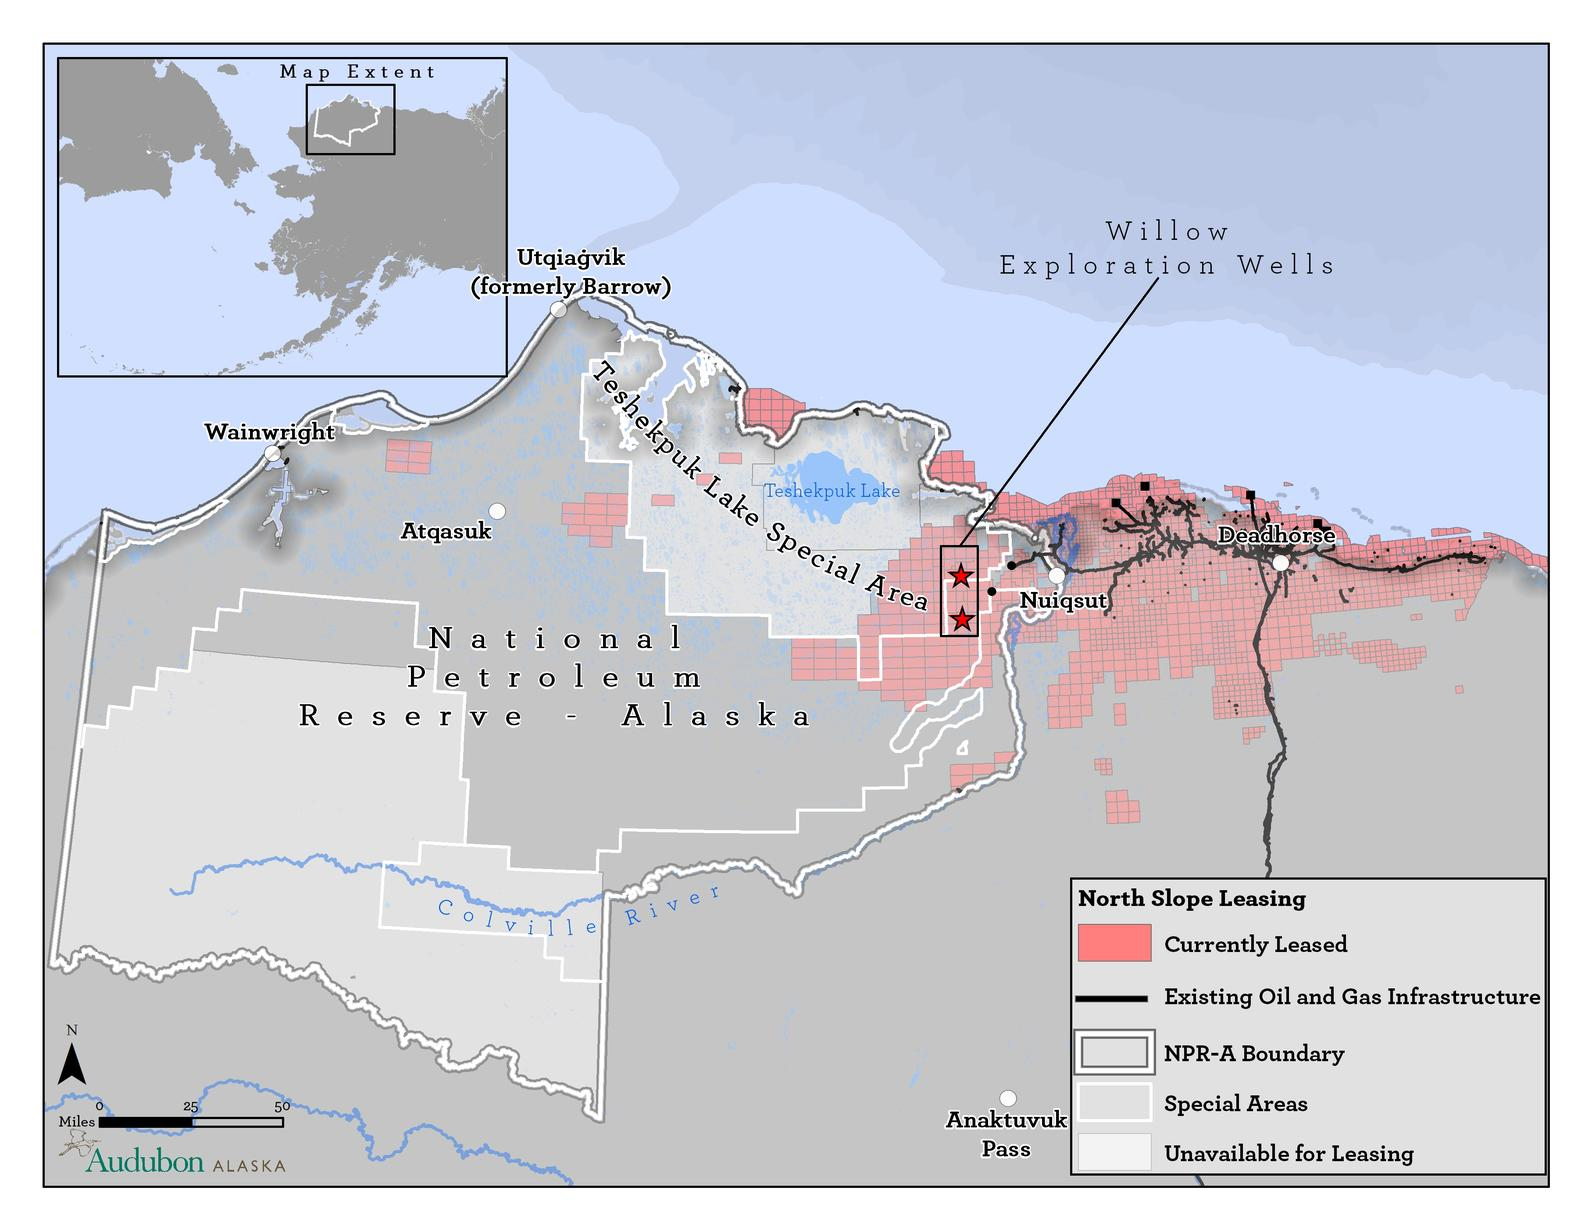 Mive new oil project poses risks to Arctic birds and ... Map Of Deadhorse Ak on map of old harbor ak, map of nulato ak, map of akiak ak, map of tok ak, map of wasilla ak, map of kotzebue ak, map of stebbins ak, map of shemya ak, map of adak ak, map of craig ak, map of willow ak, map of emmonak ak, map of north pole ak, map of glennallen ak, map of dillingham ak, map of juneau ak, map of false pass ak, map of ester ak, map of soldotna ak, map of ketchikan ak,